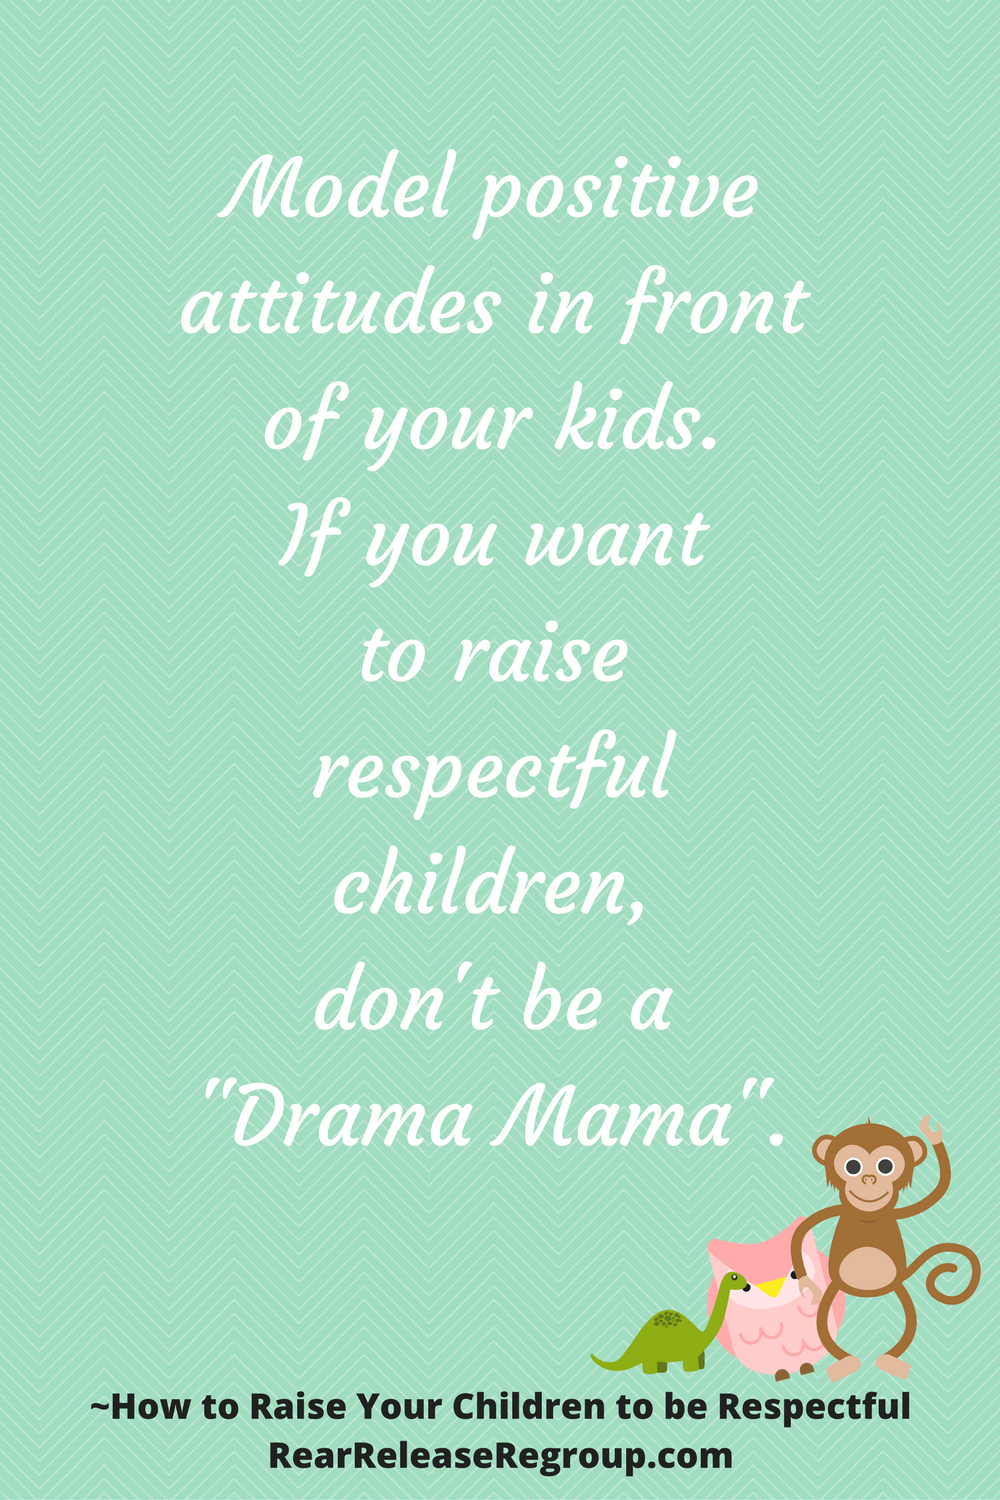 How To Raise Your Children To Be Respectful Christian Parenting Advice Respectful Children Children